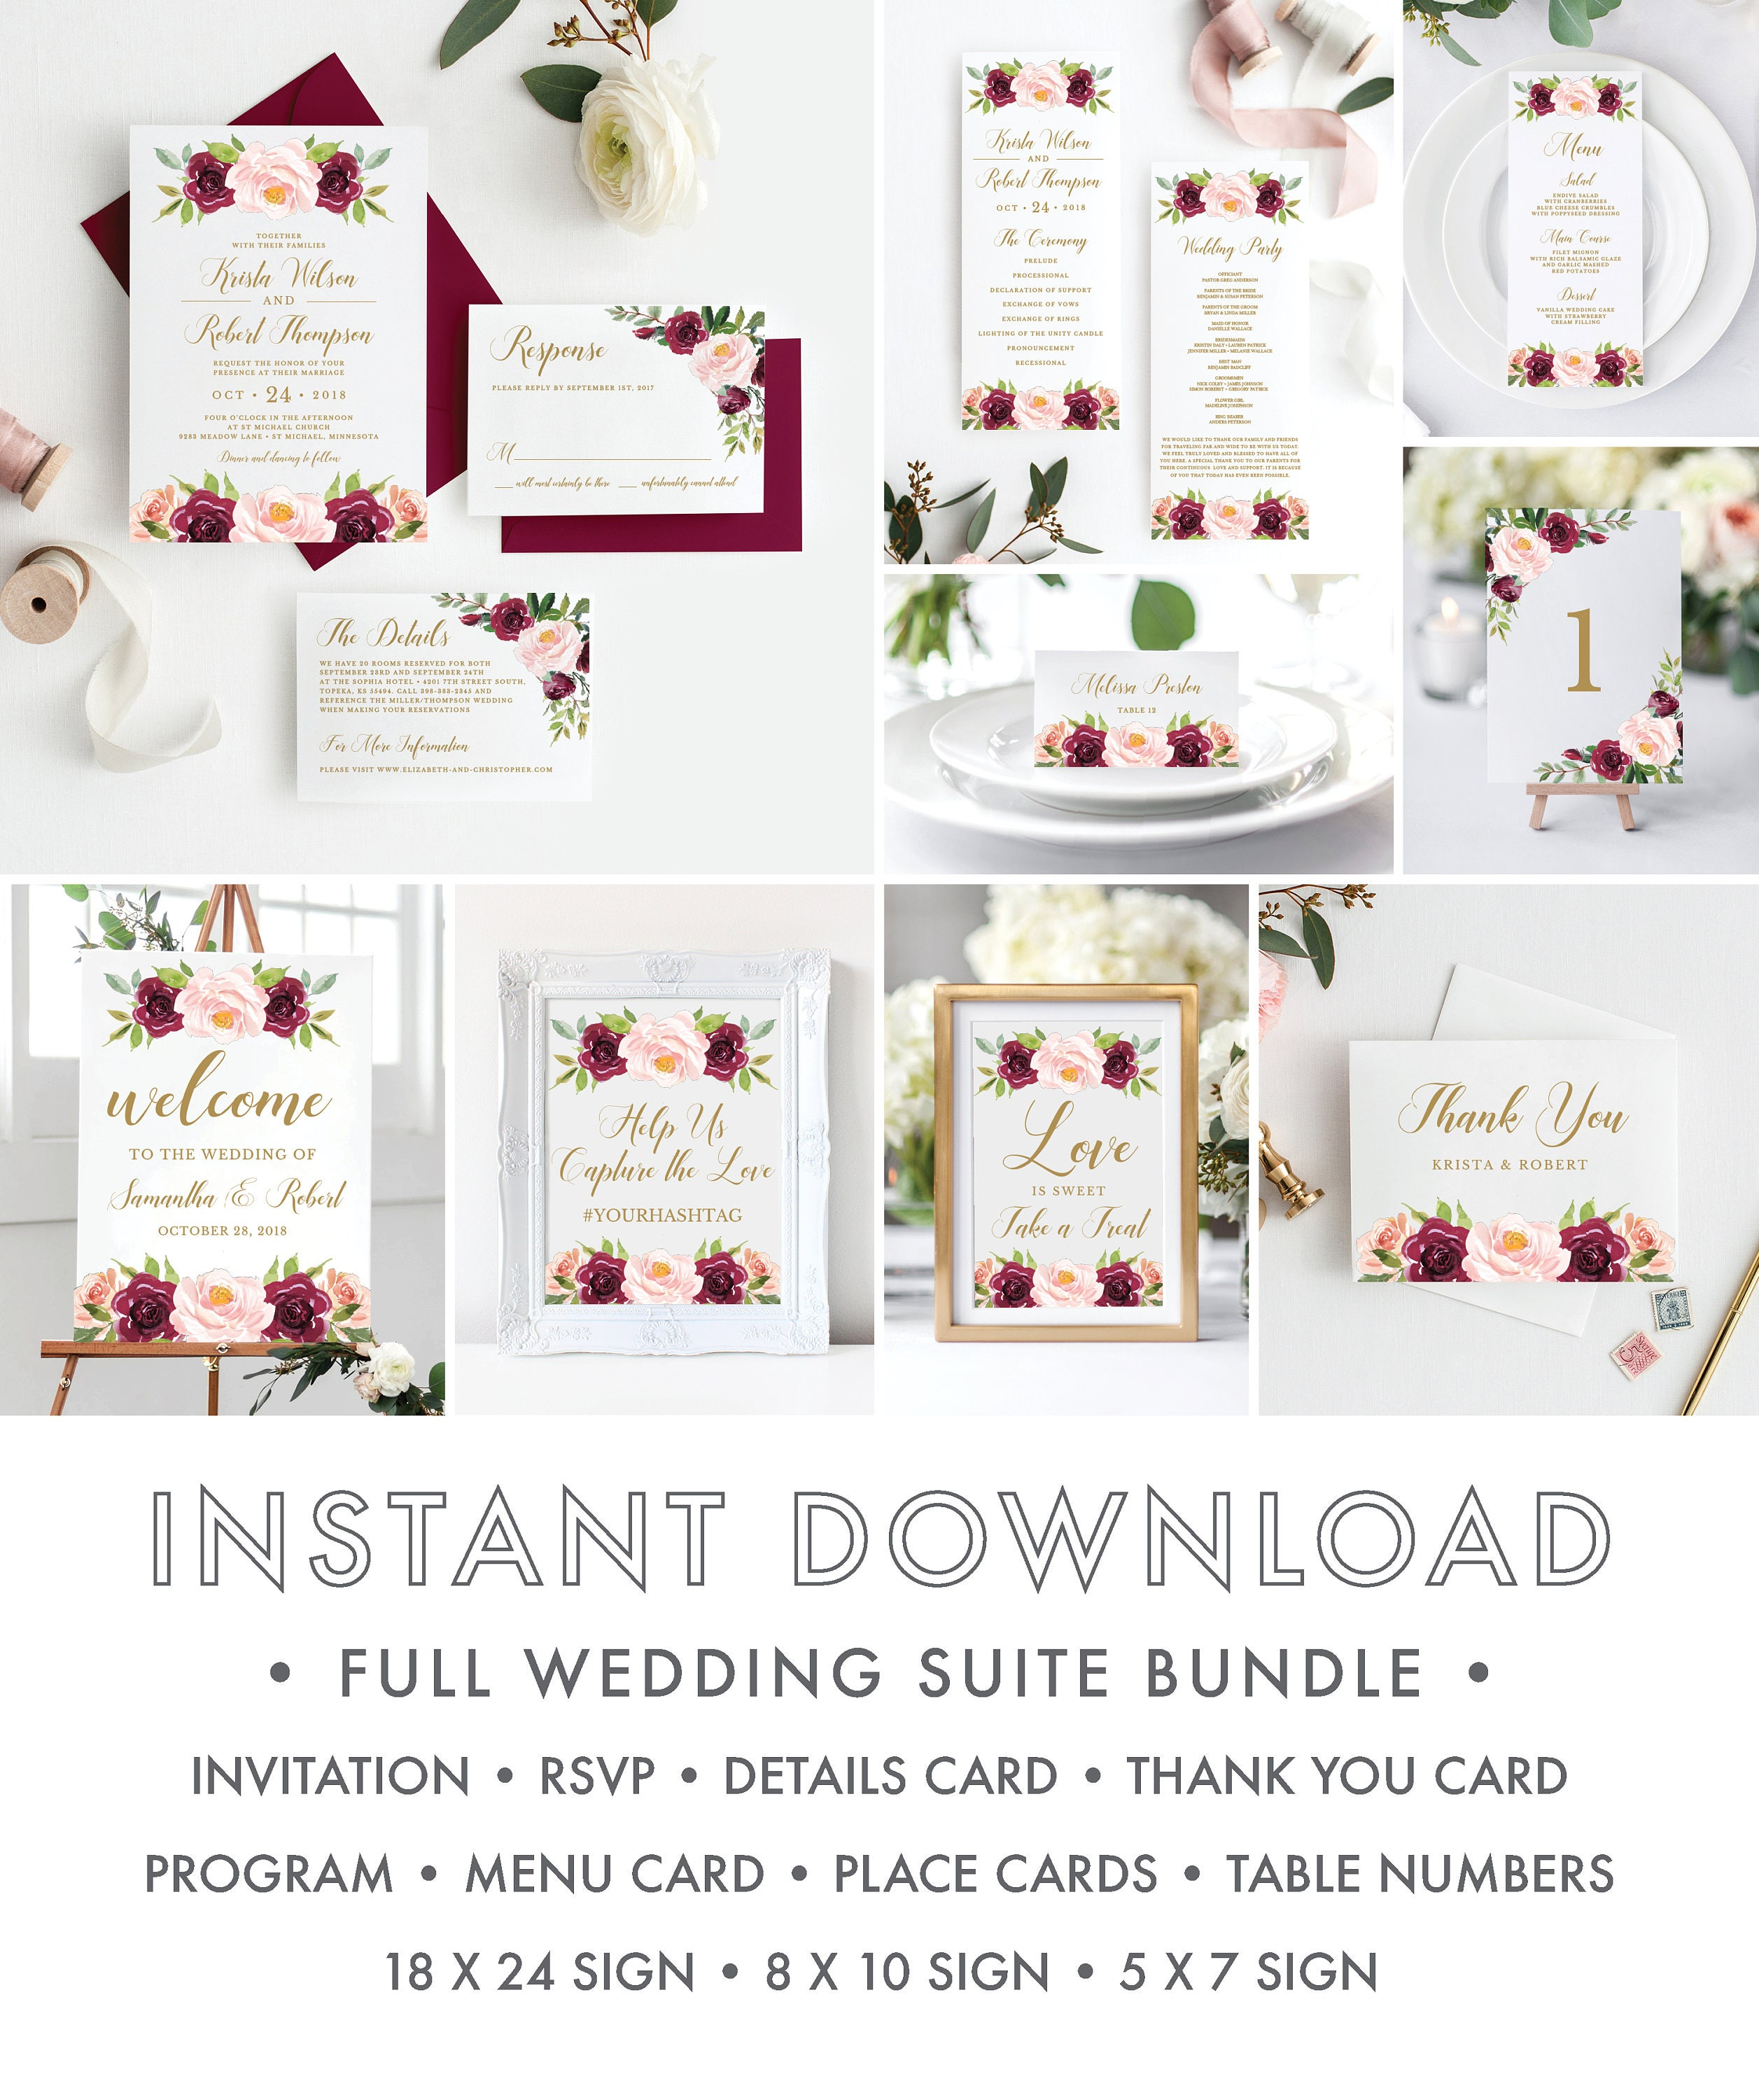 Full Wedding Suite Bundle Burgundy Rustic Floral Wedding Invitation - Wedding invitation templates: wedding invitation suite templates